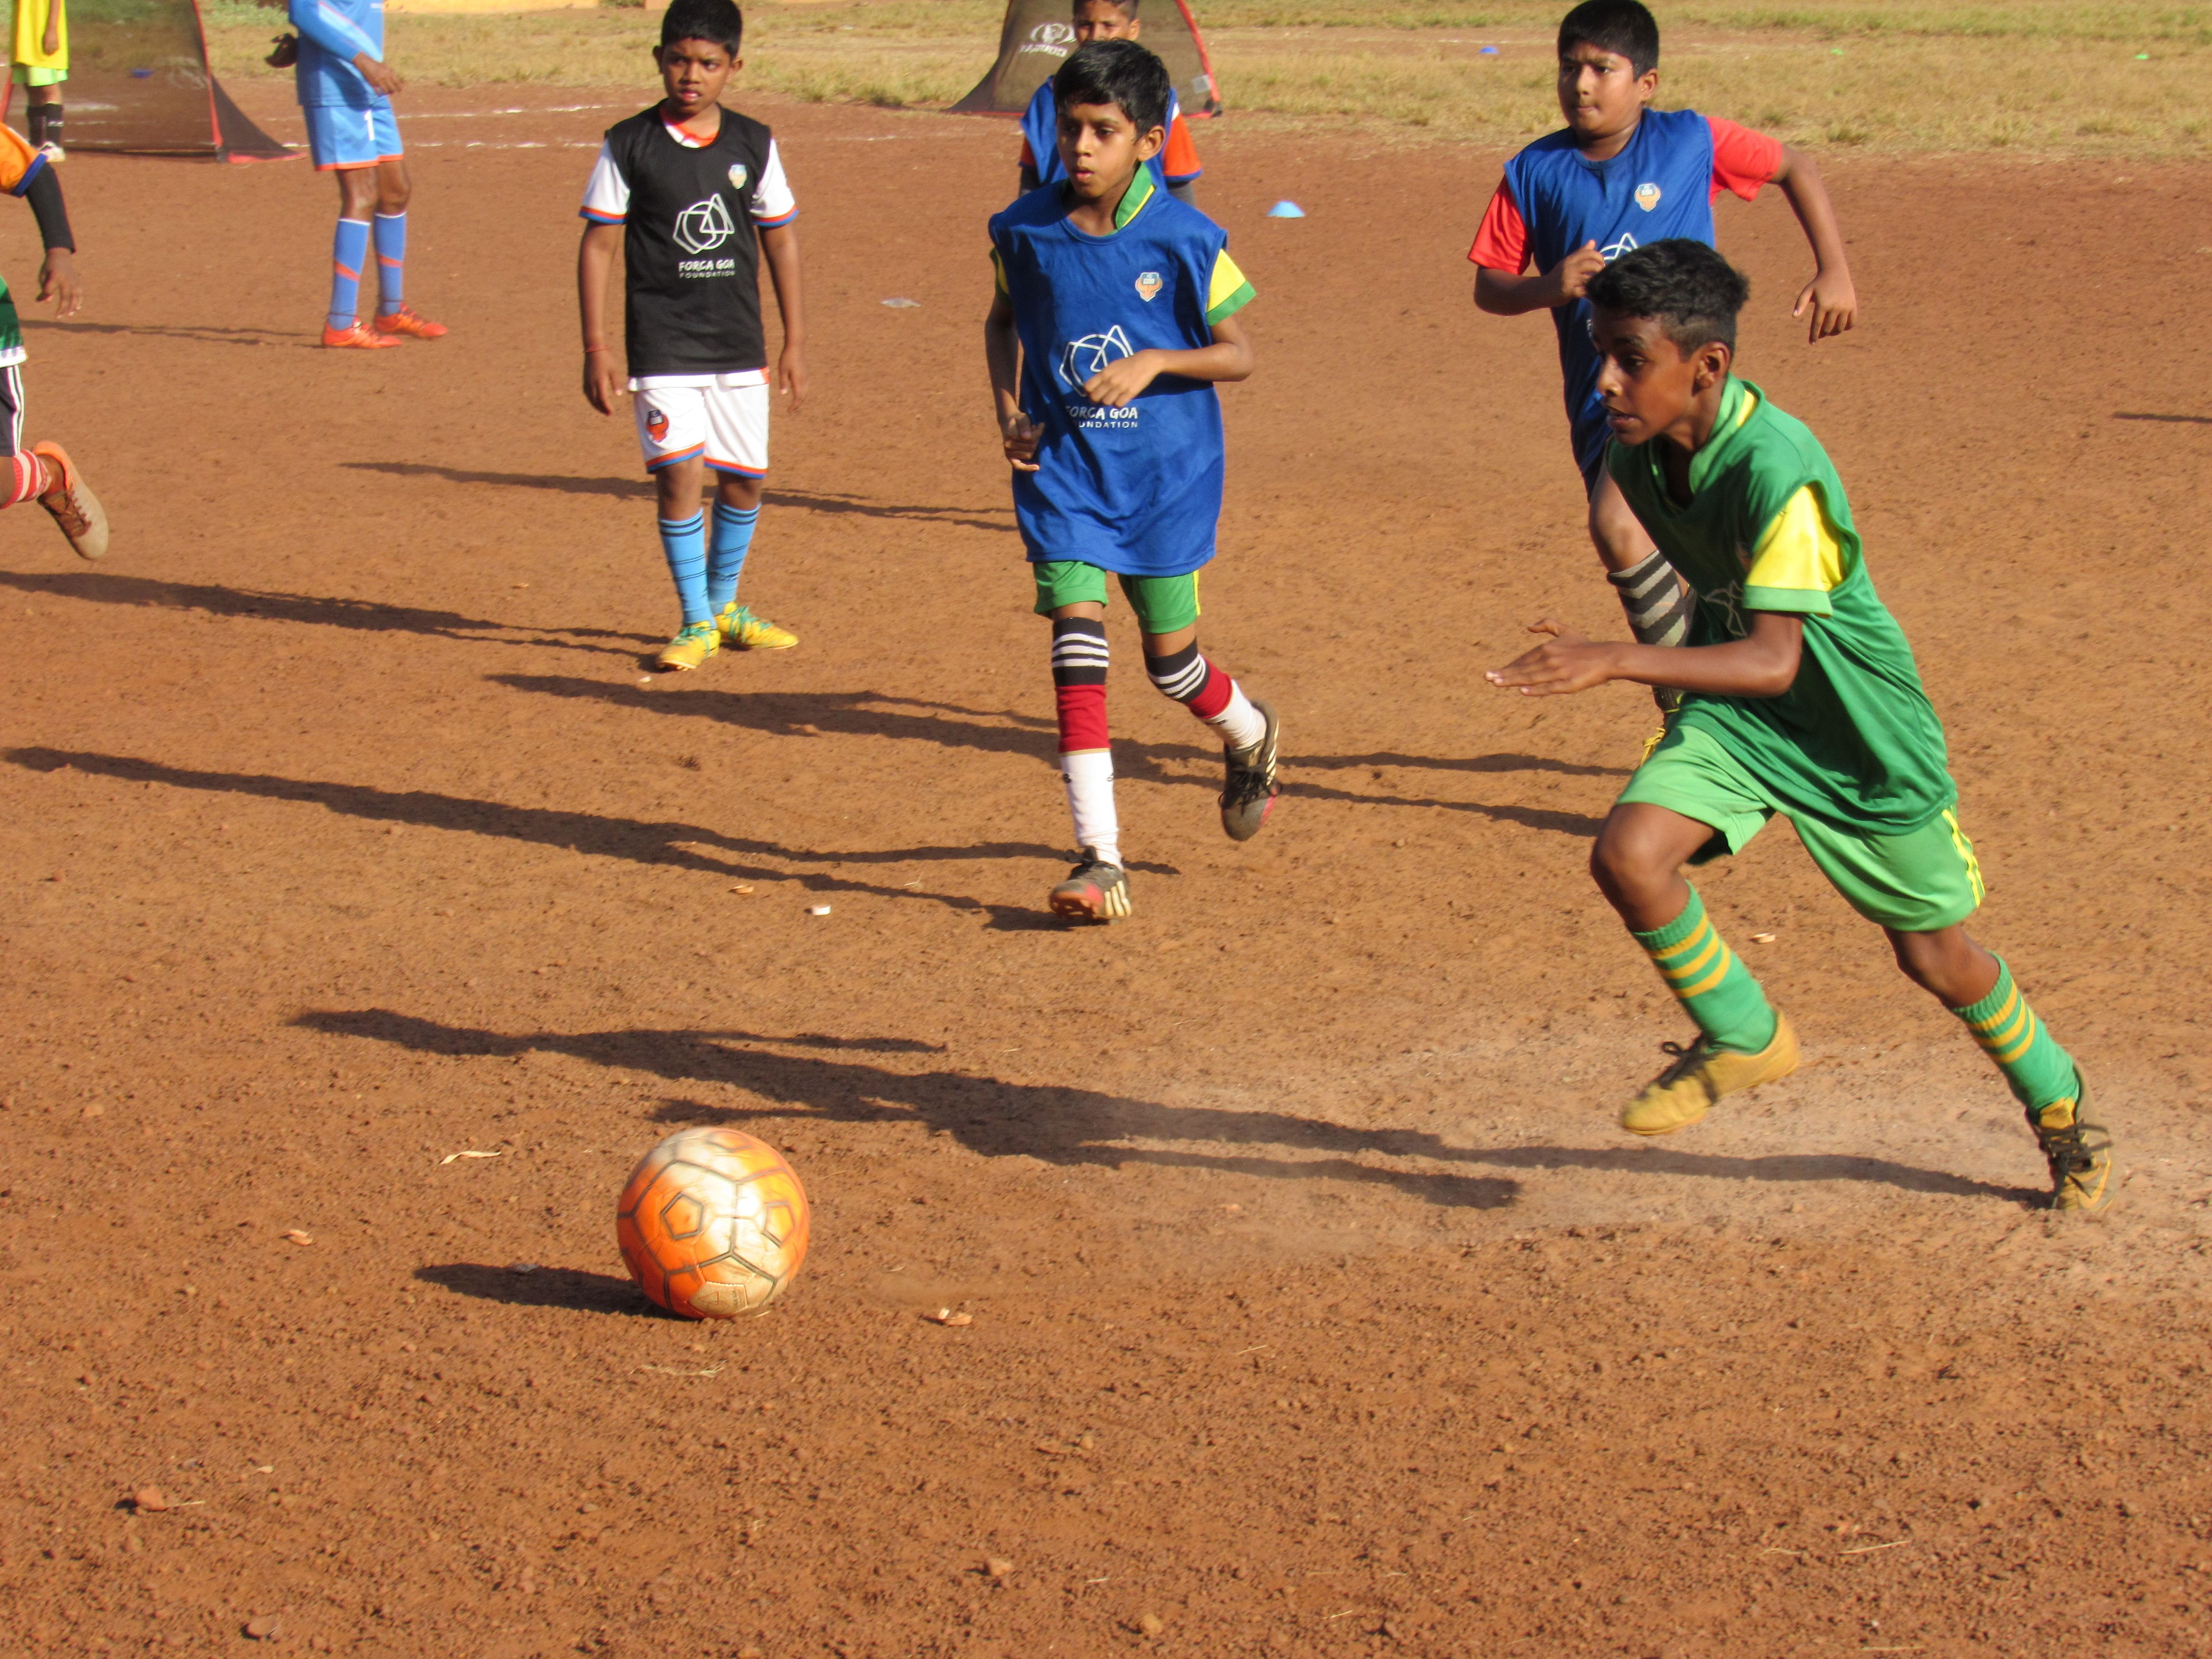 Thanks to this initiative, over 4,000 children in Goa will have enjoyed the experience of playing the beautiful game with these Fairtrade footballs this year.